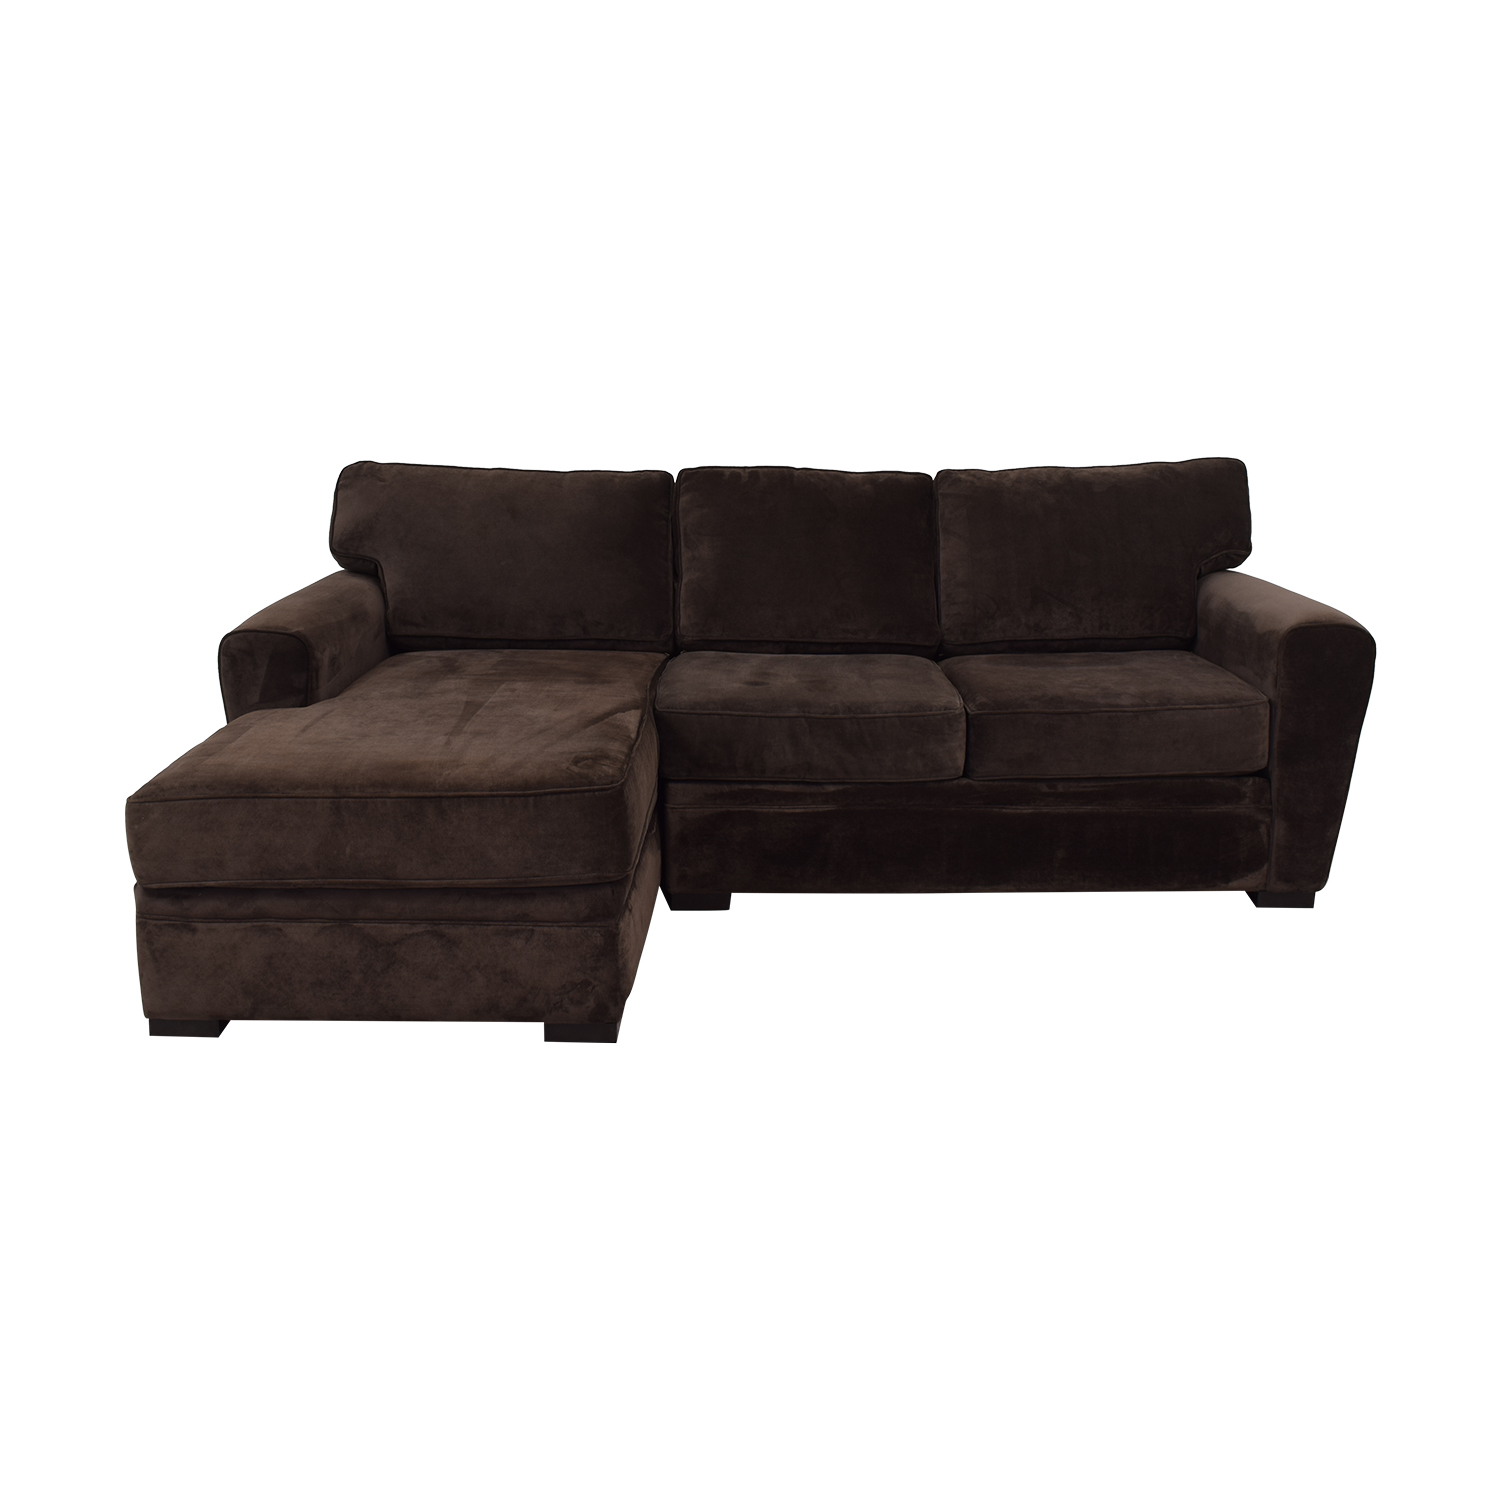 shop Raymour & Flanigan Artemis II Brown Microfiber Chaise Sectional Raymour & Flanigan Sofas